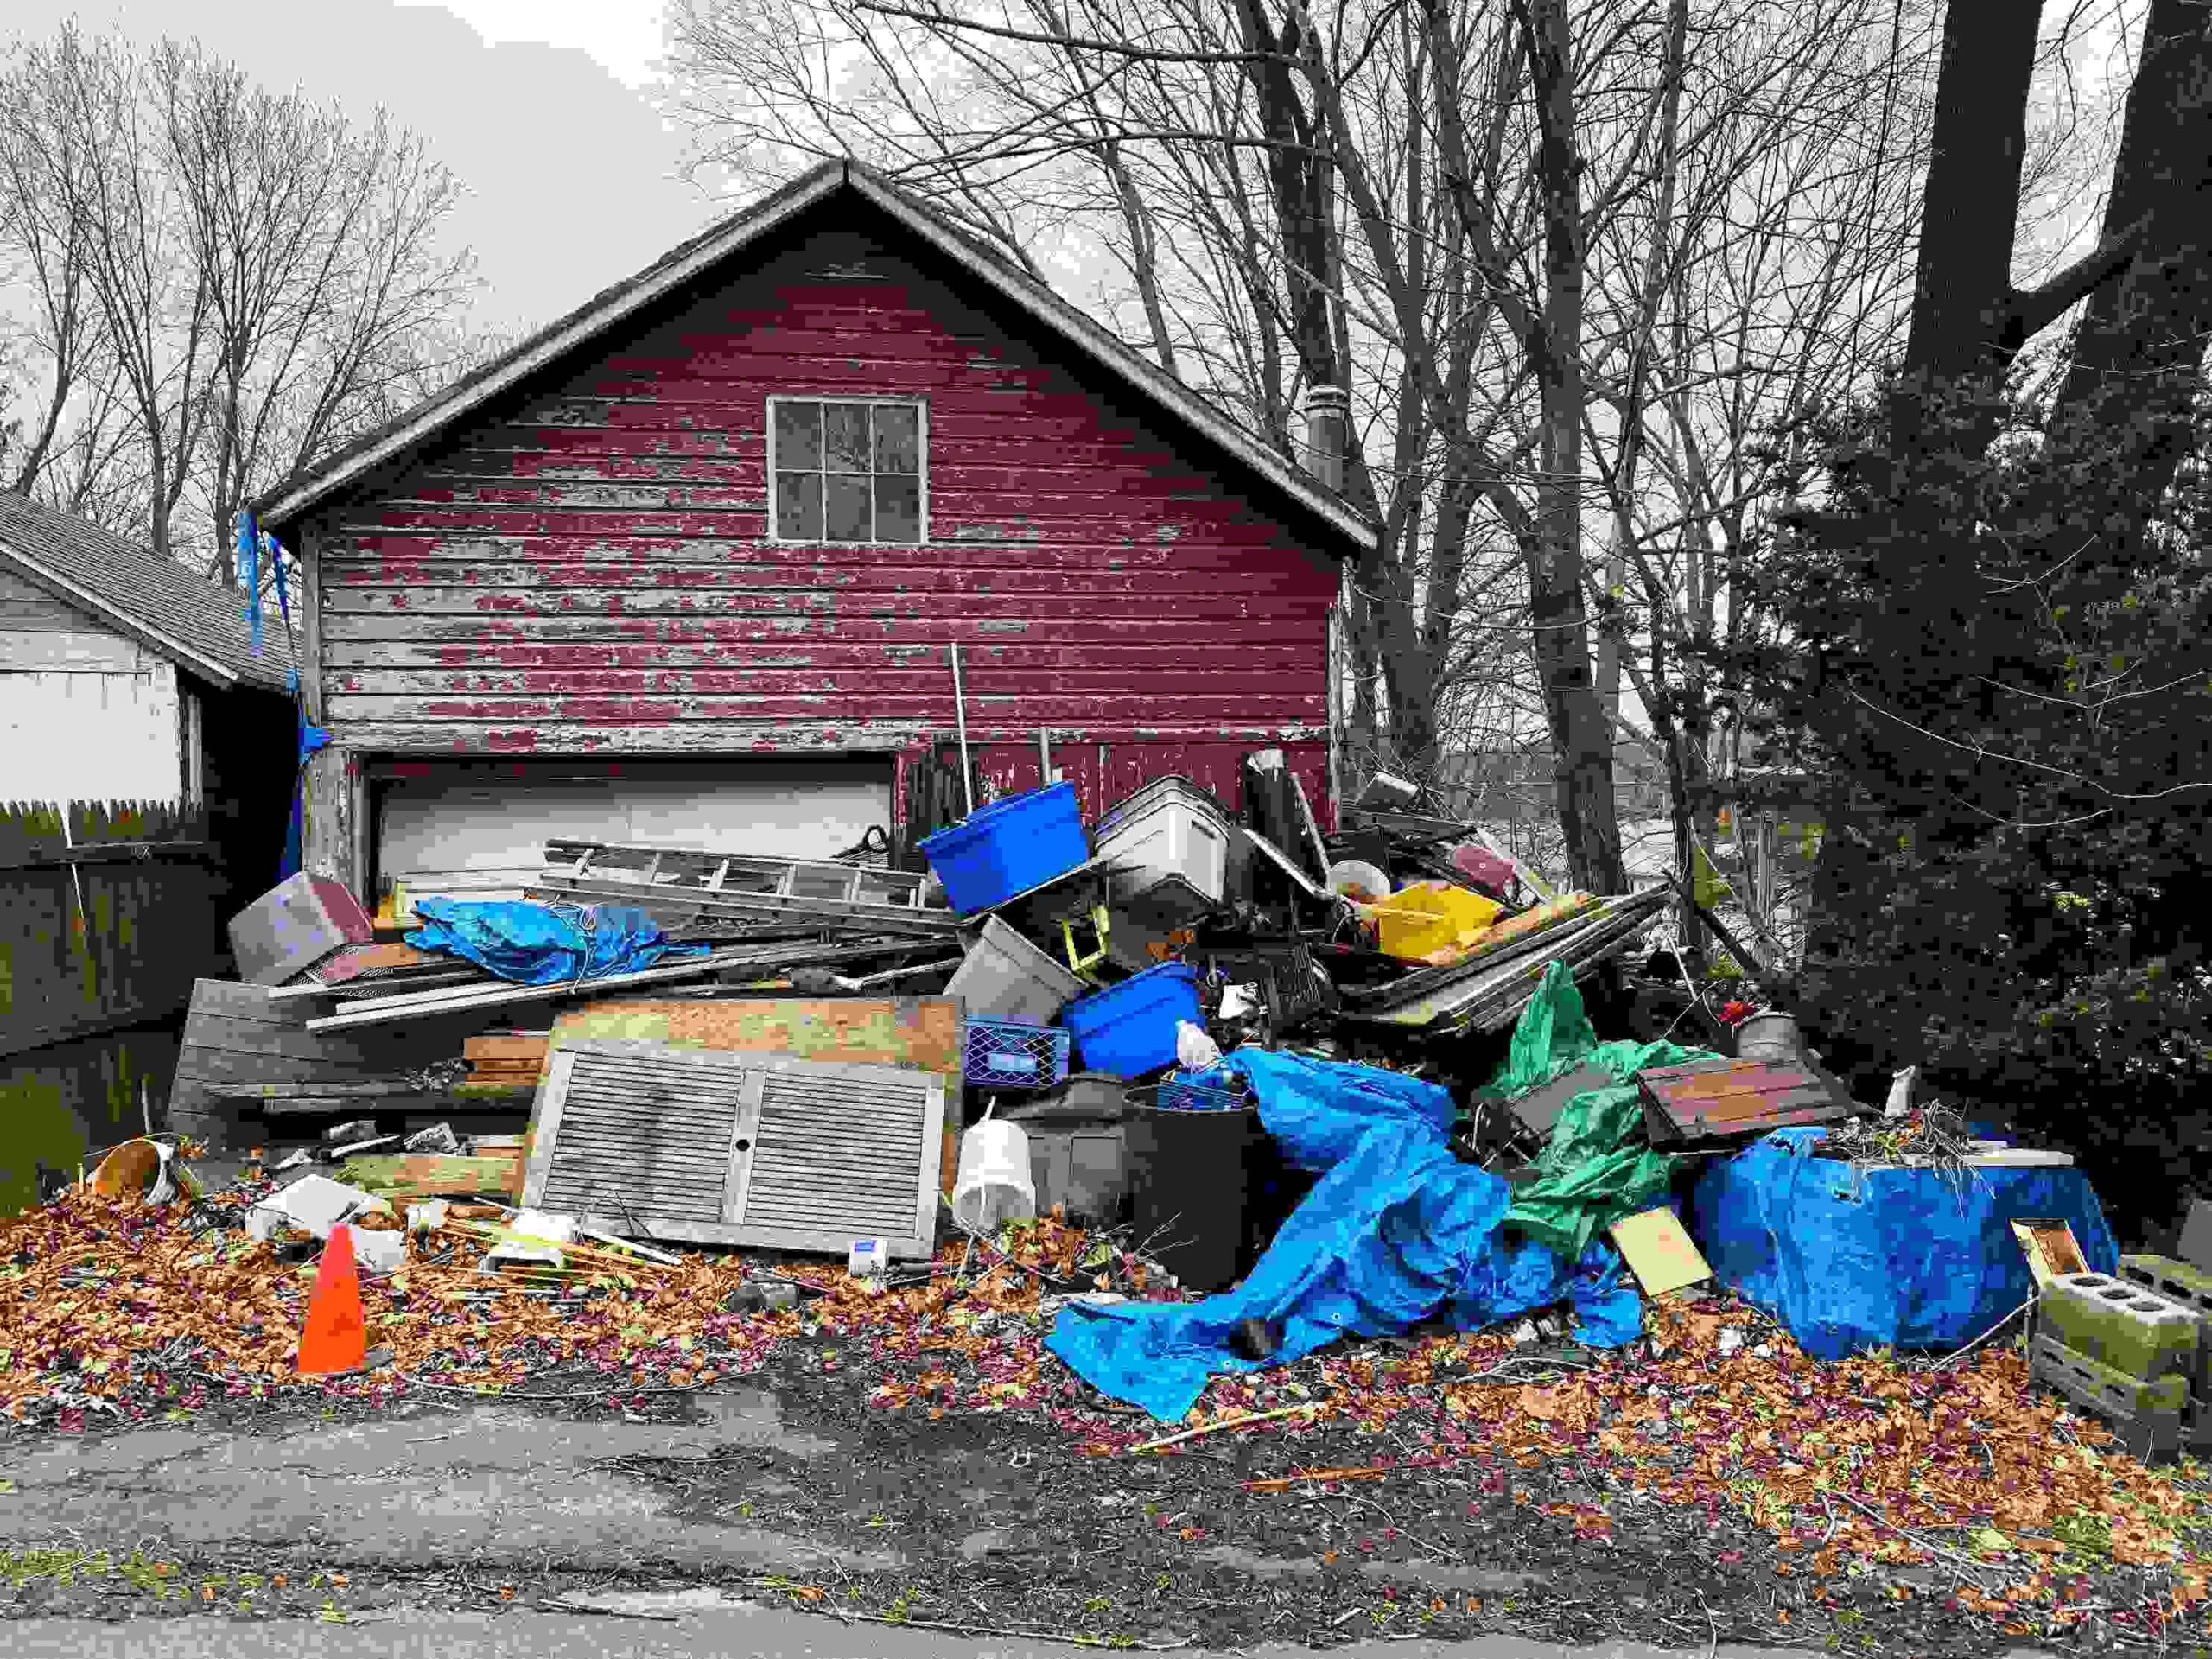 decluttering when there is a hoarding issue involved can take time